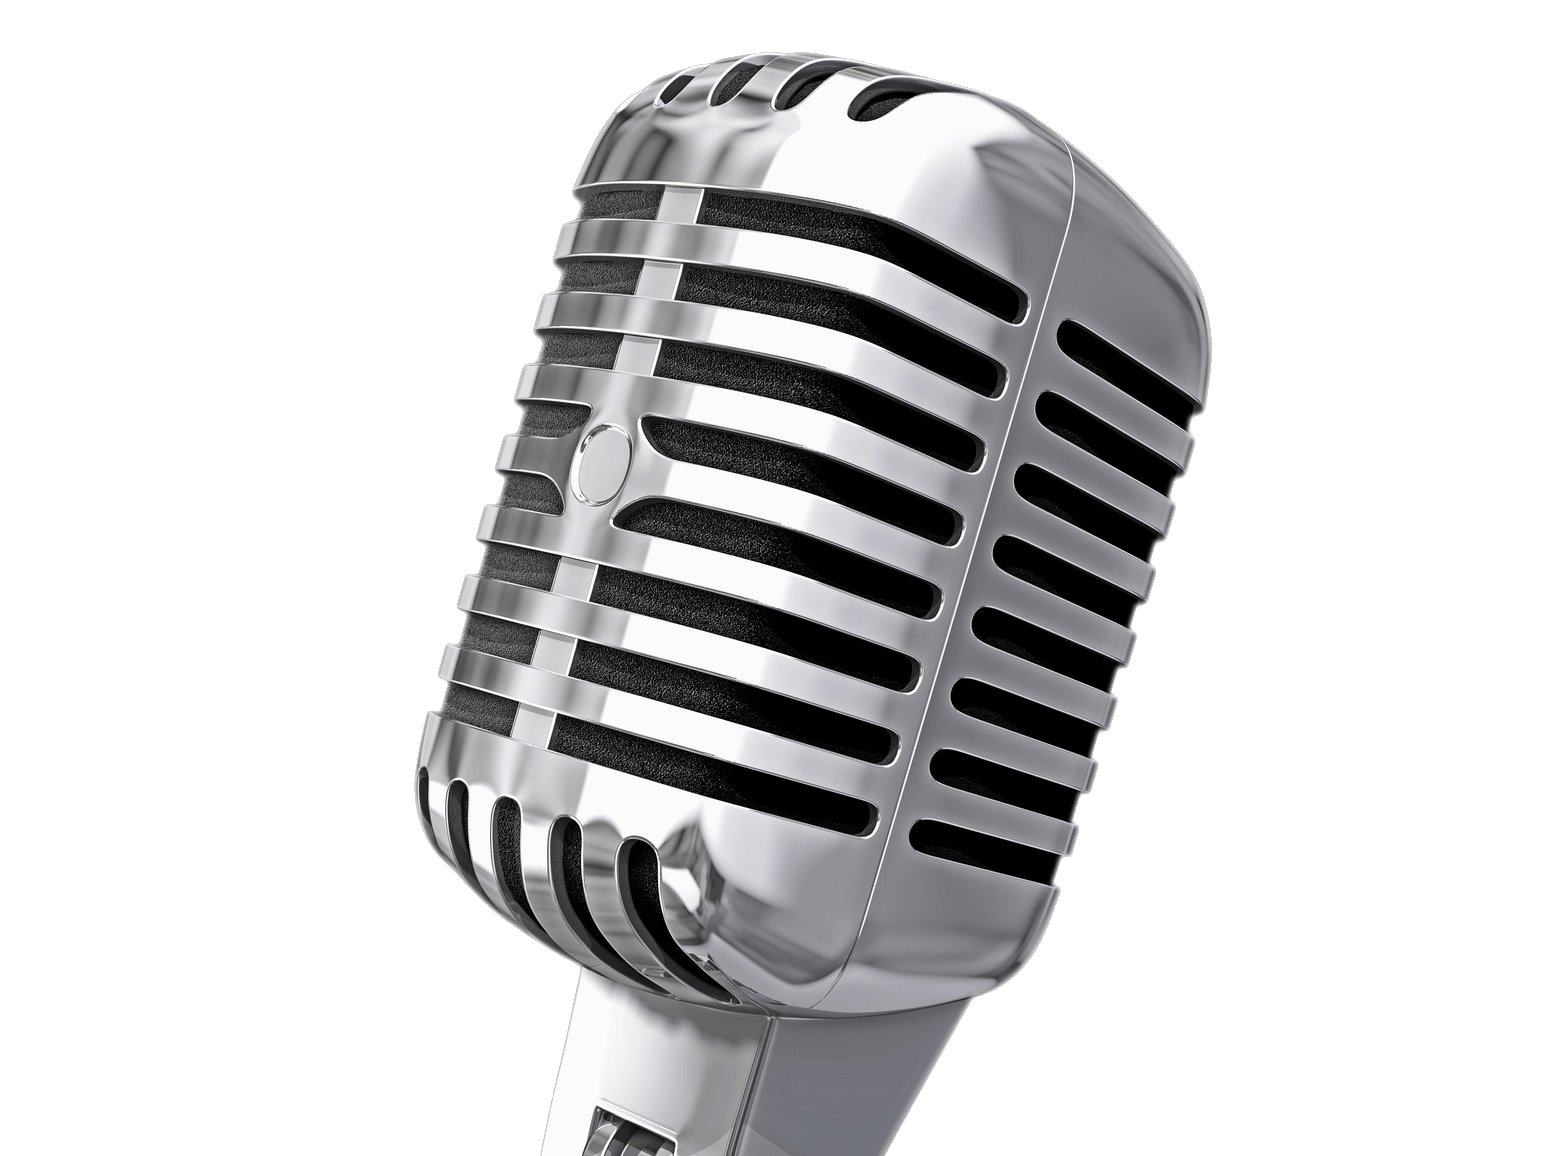 Vintage microphone transparent stick png